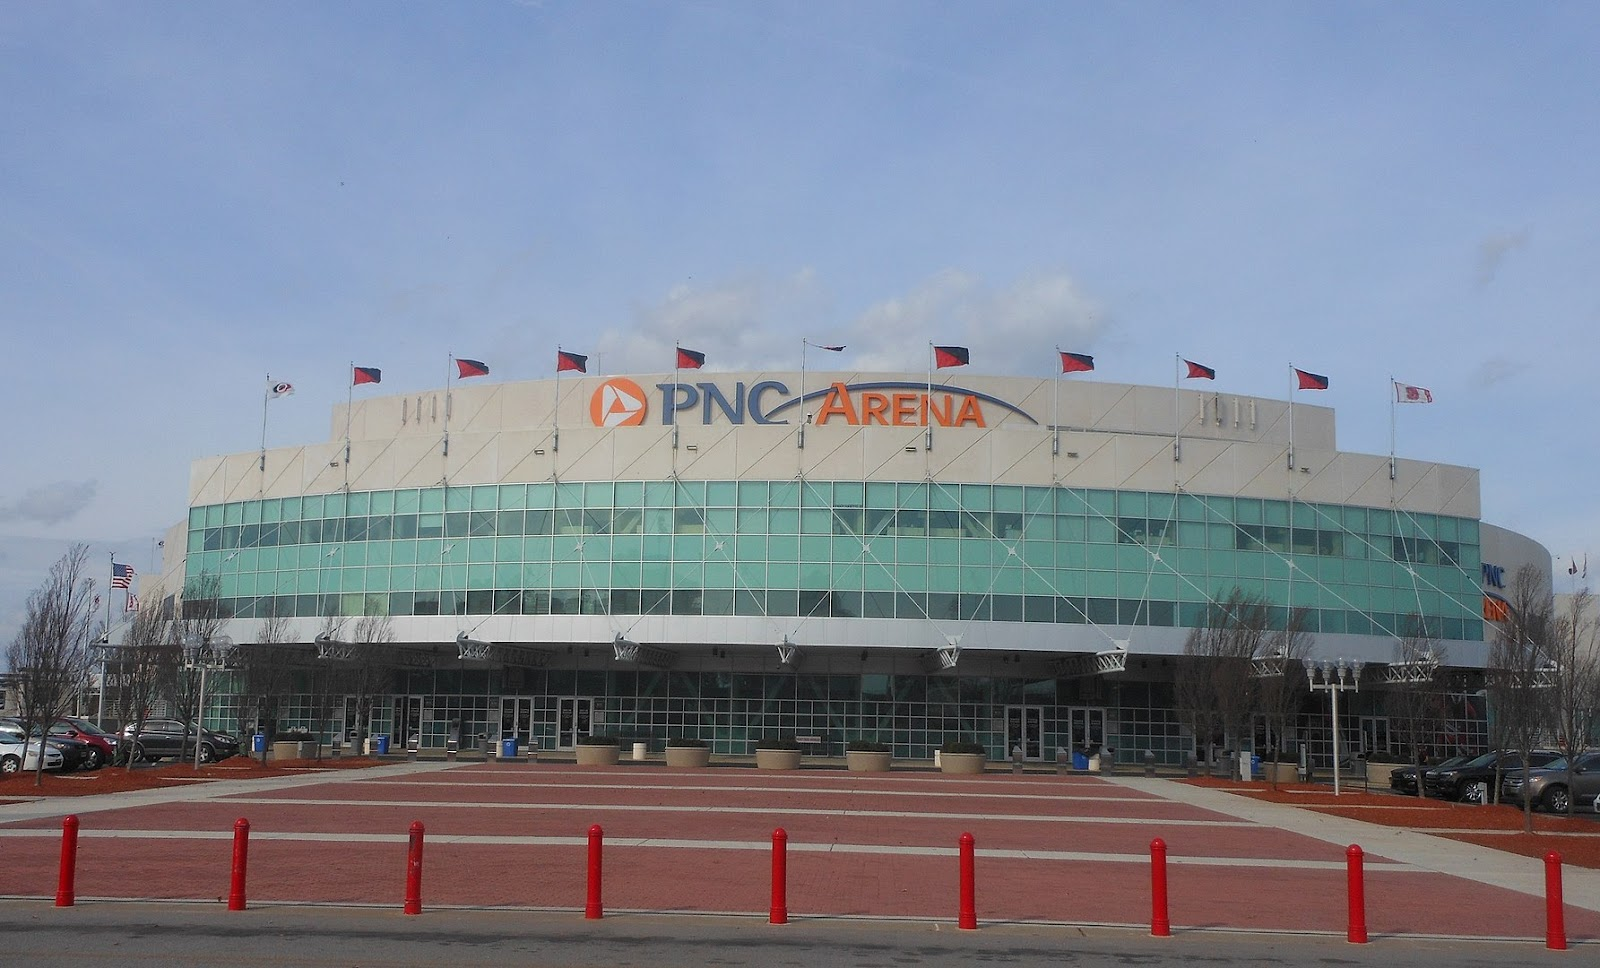 PNC Arena in Raleigh, North Carolina is one of the locations where Johnson & Johnson COVID-19 vaccinations were temporarily suspended due to side effects.